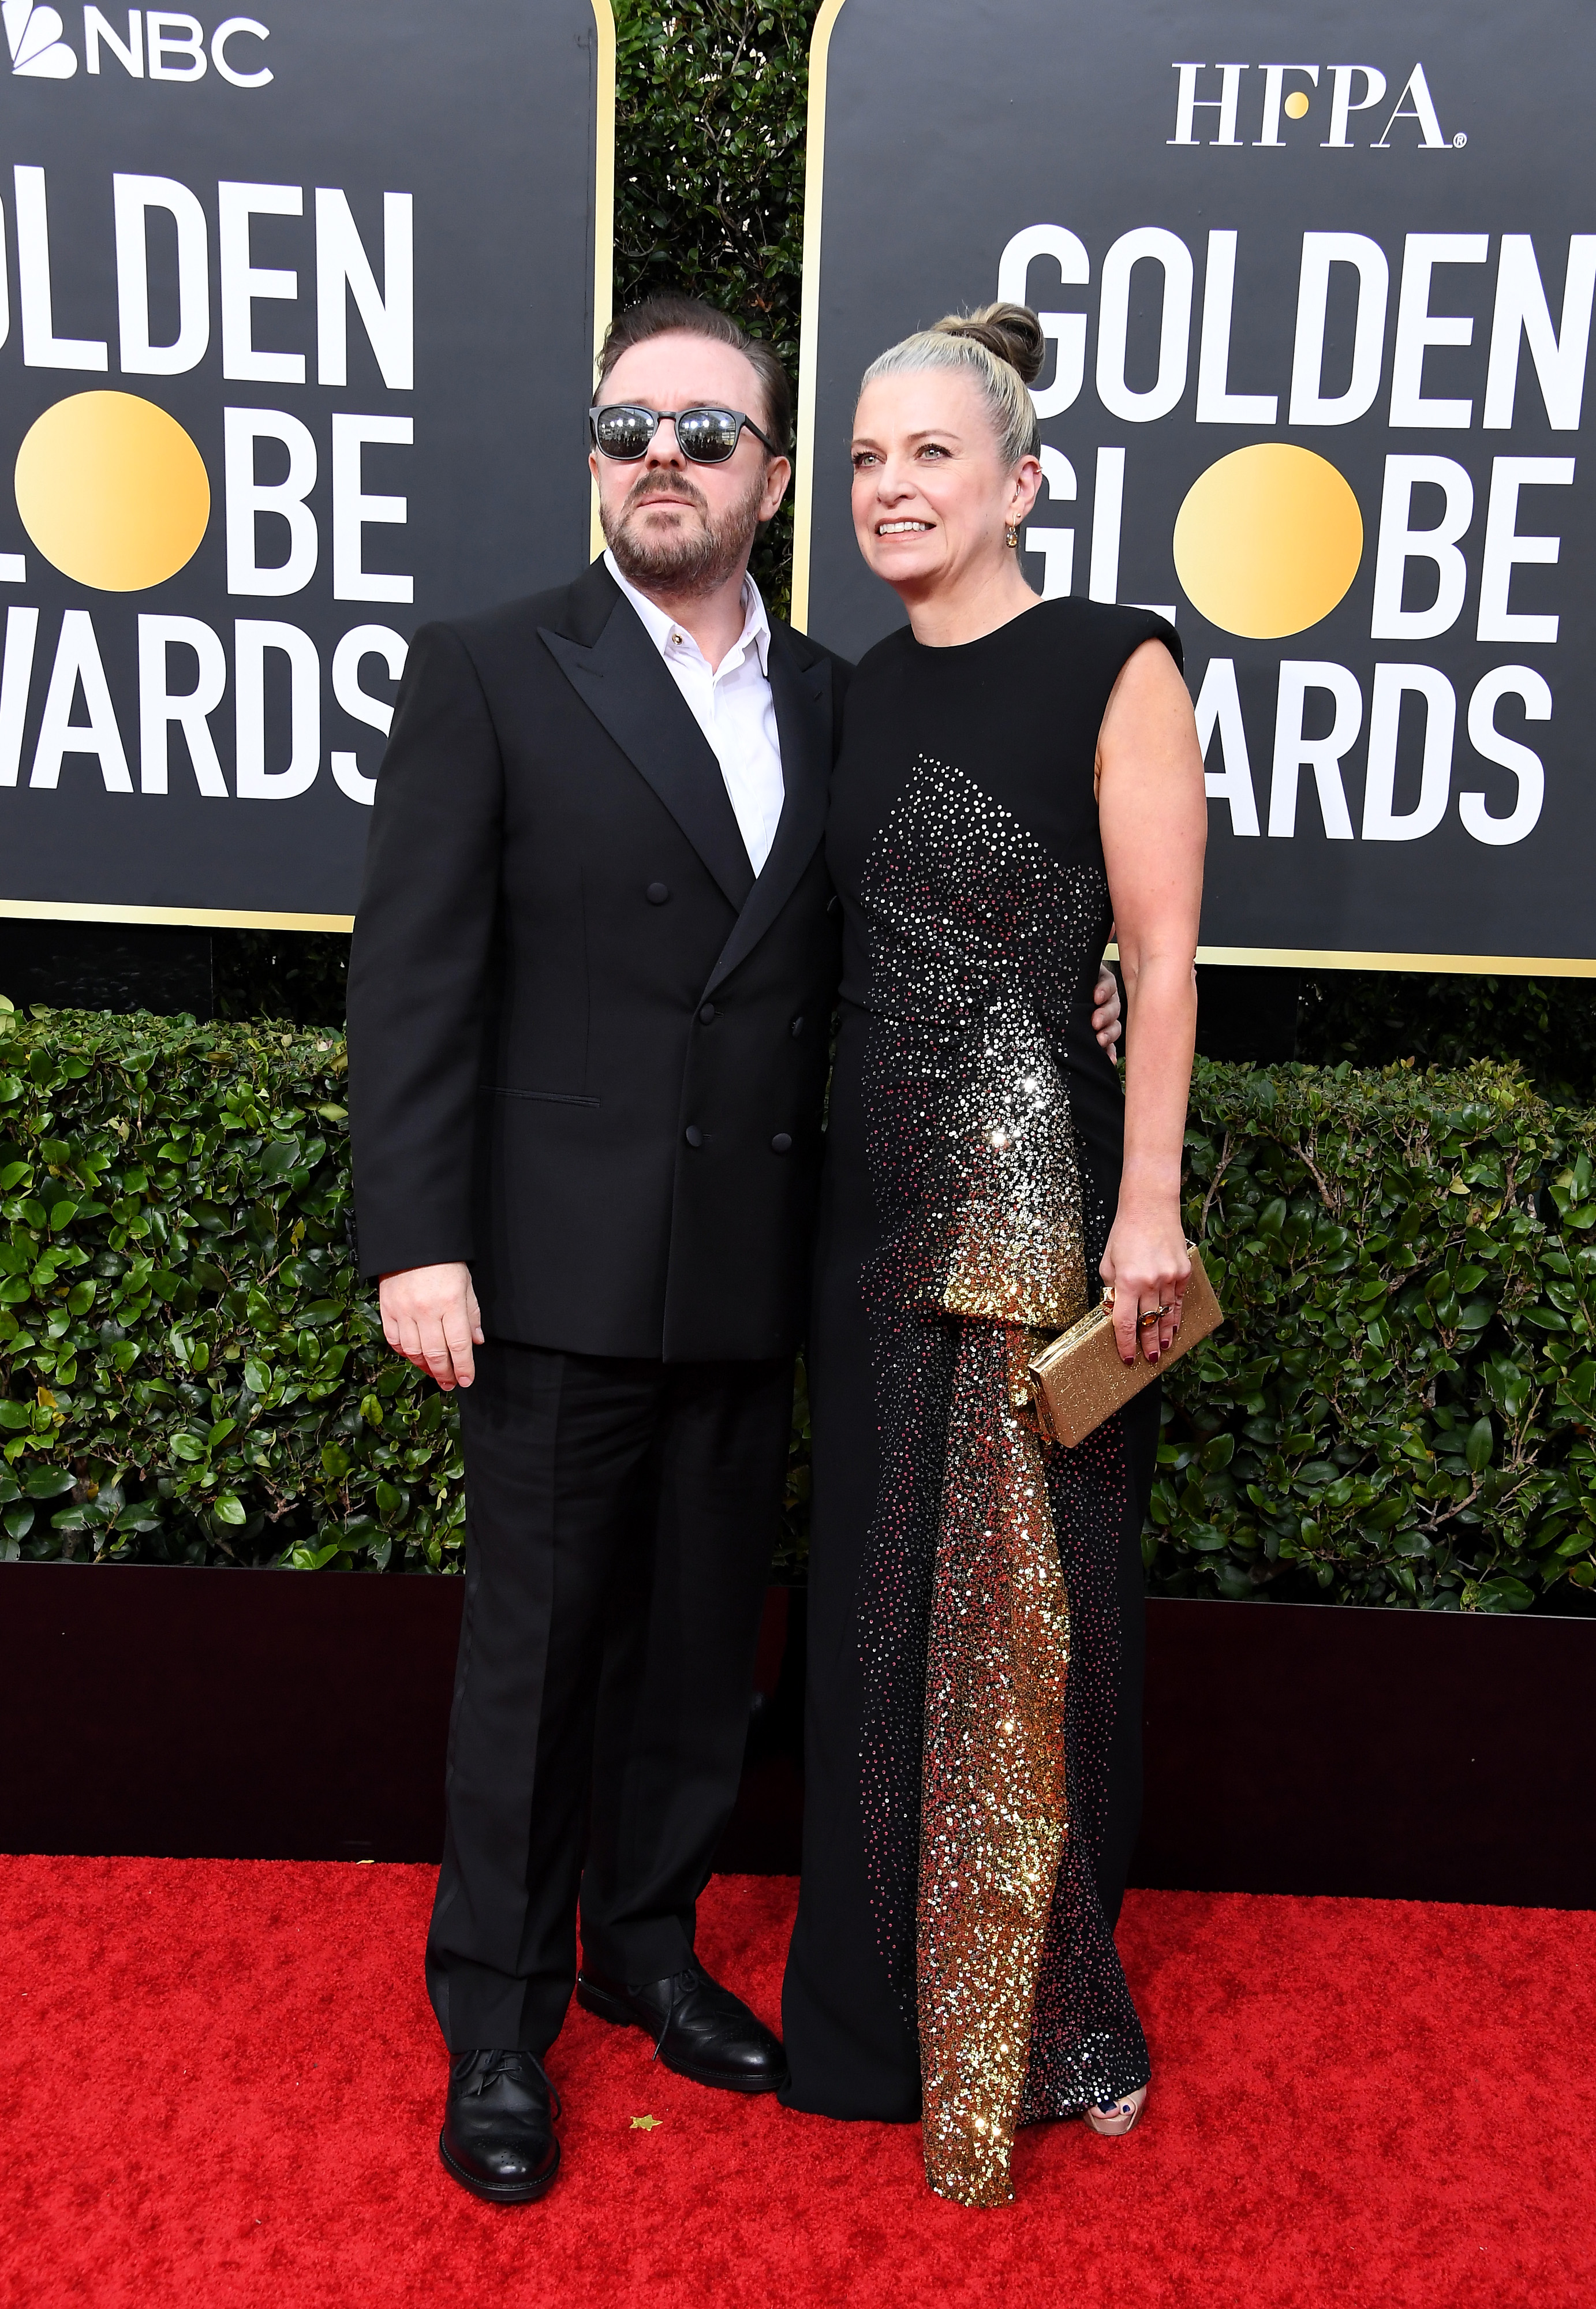 BEVERLY HILLS, CALIFORNIA - JANUARY 05: Ricky Gervais and Jane Fallon attend the 77th Annual Golden Globe Awards at The Beverly Hilton Hotel on January 05, 2020 in Beverly Hills, California. (Photo by Steve Granitz/WireImage)